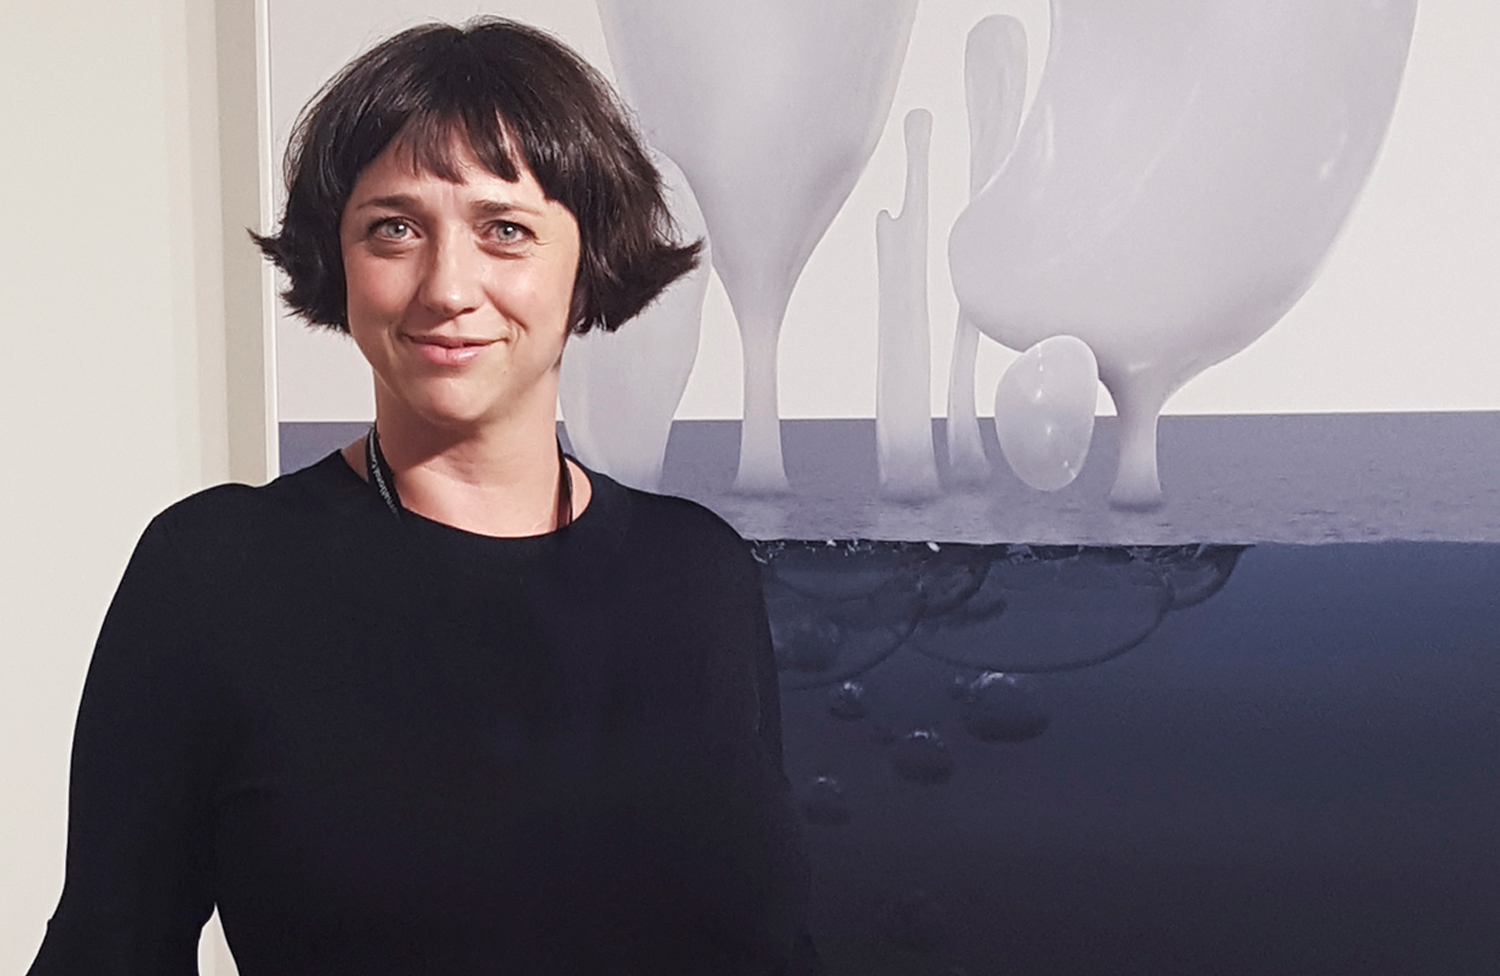 Luisa Catucci – CEO, Gallery Director and Curator